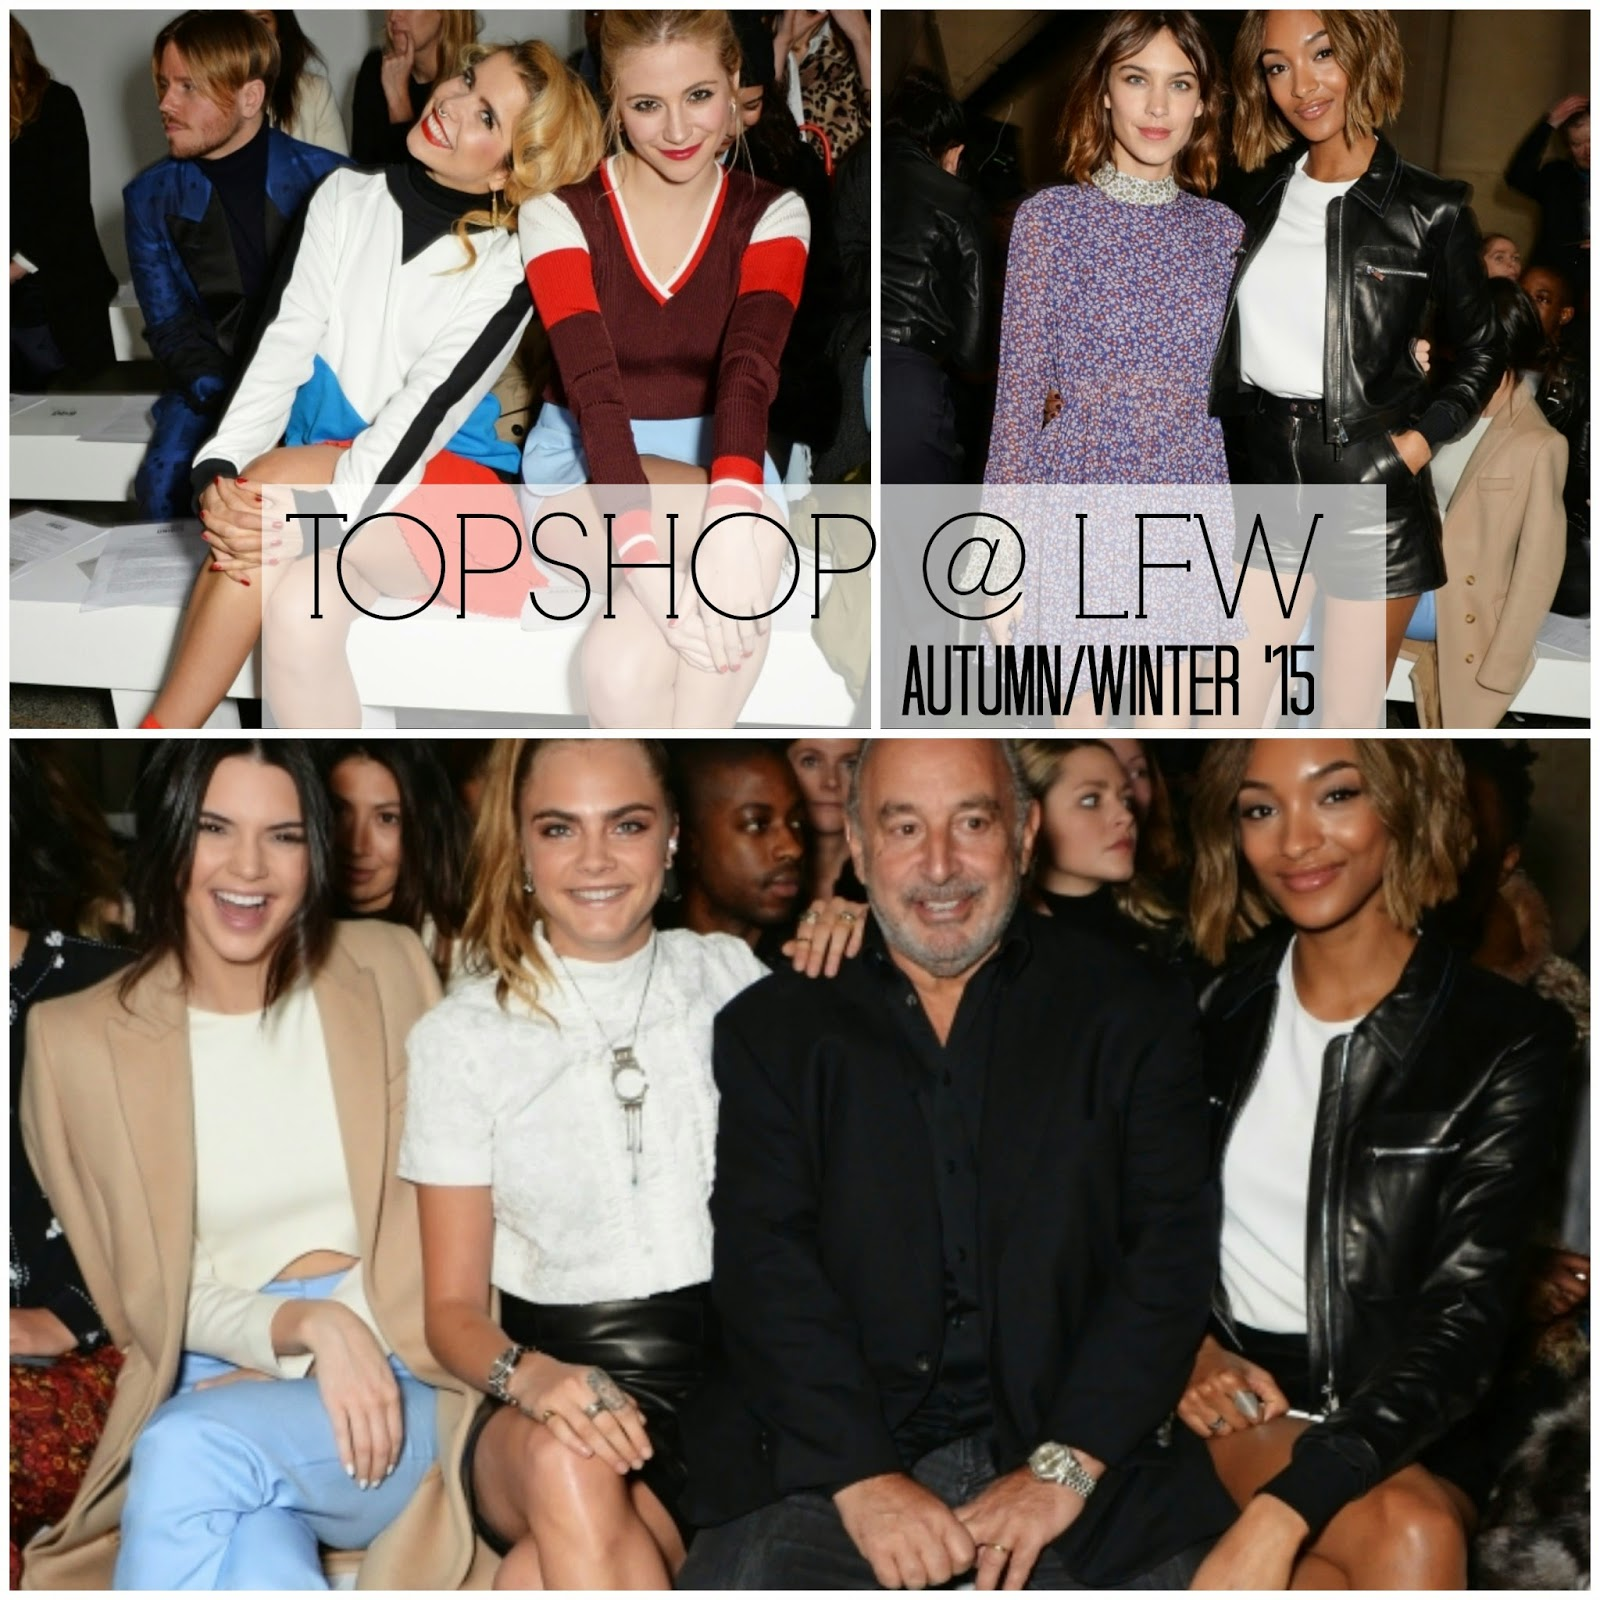 topshop lfw london fashion week autumn/winter aw 2015 trends kendall jenner cara delevigne alexa chung jourdan dunn paloma faith pixie lott frow